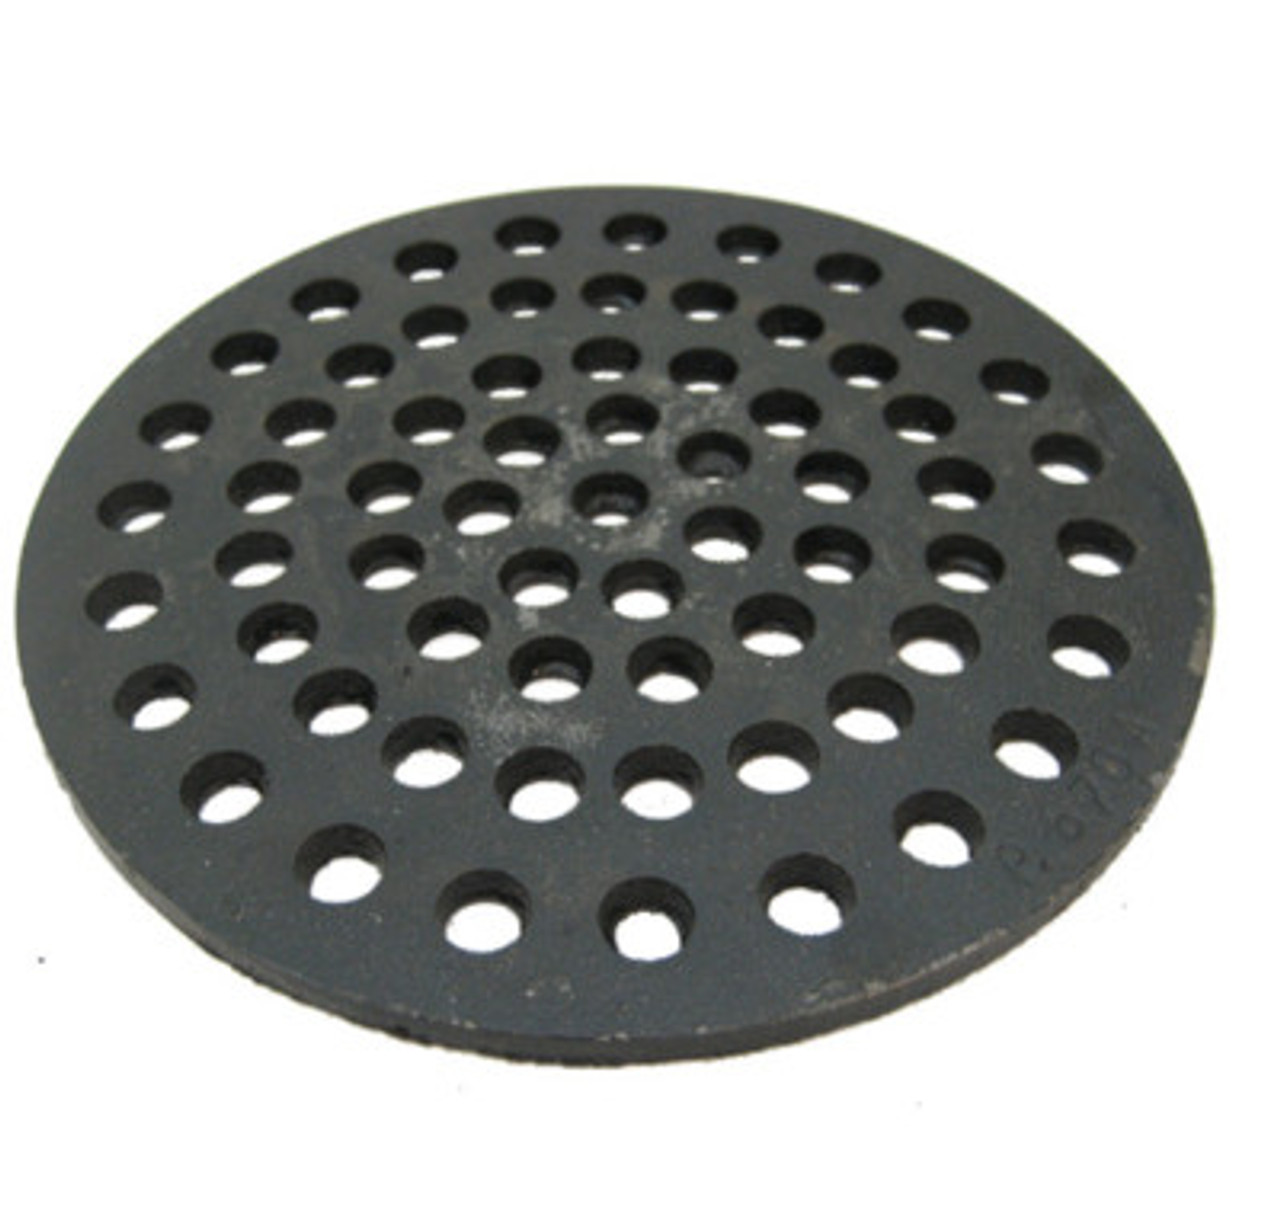 """7 3/4"""" Cast Iron Grate Floor Drain Cover - Hard To Find Items"""